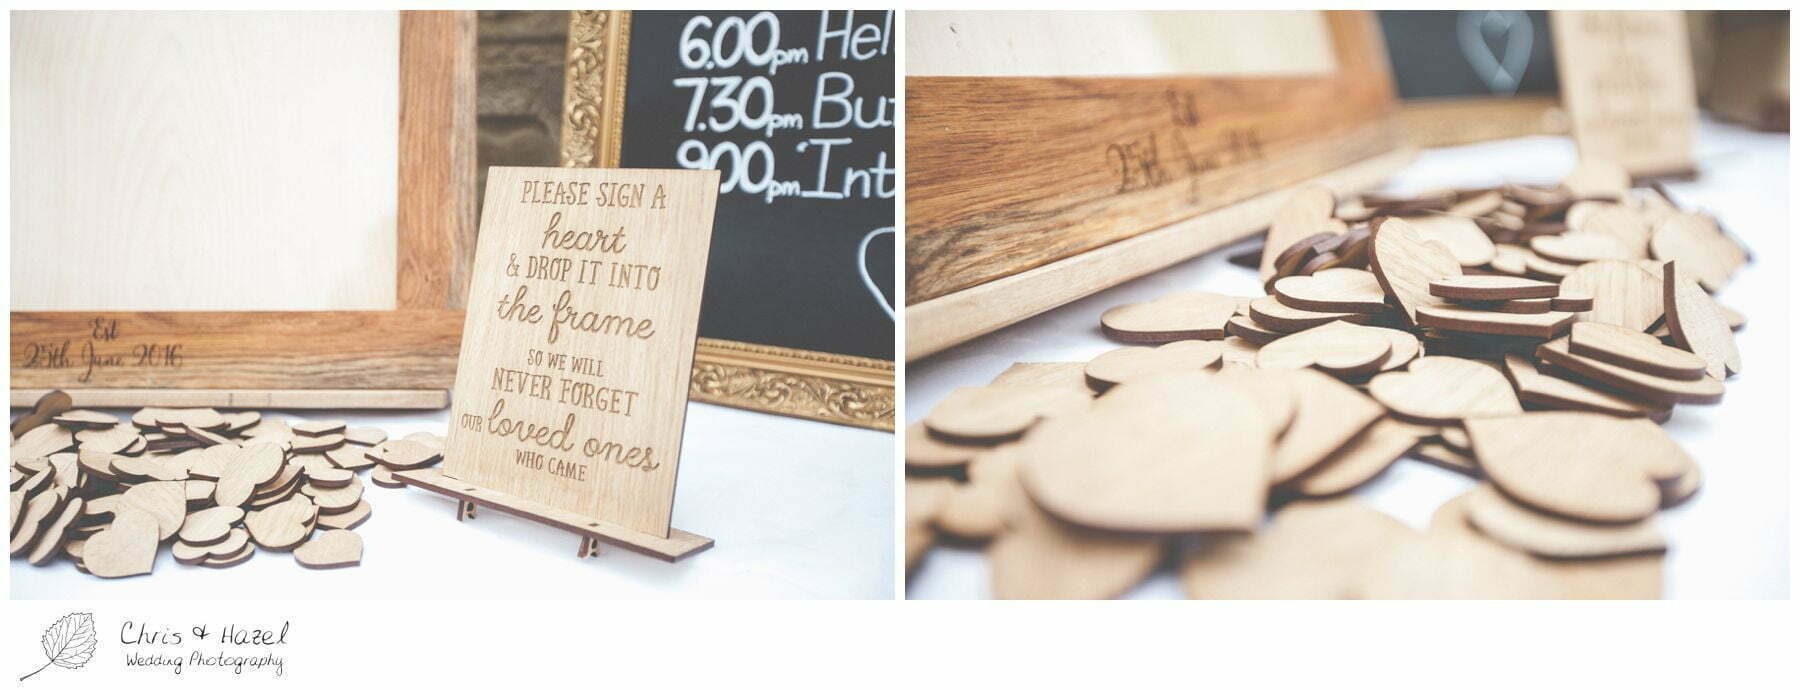 wooden heart frame guestbook alternative, eco wedding, love letters, wedding, Eccup Wedding Photographer, Lineham Farm, Wedding Photography Leeds, Chris and Hazel Wedding Photography, Richard Wyatt, Laura Kelly